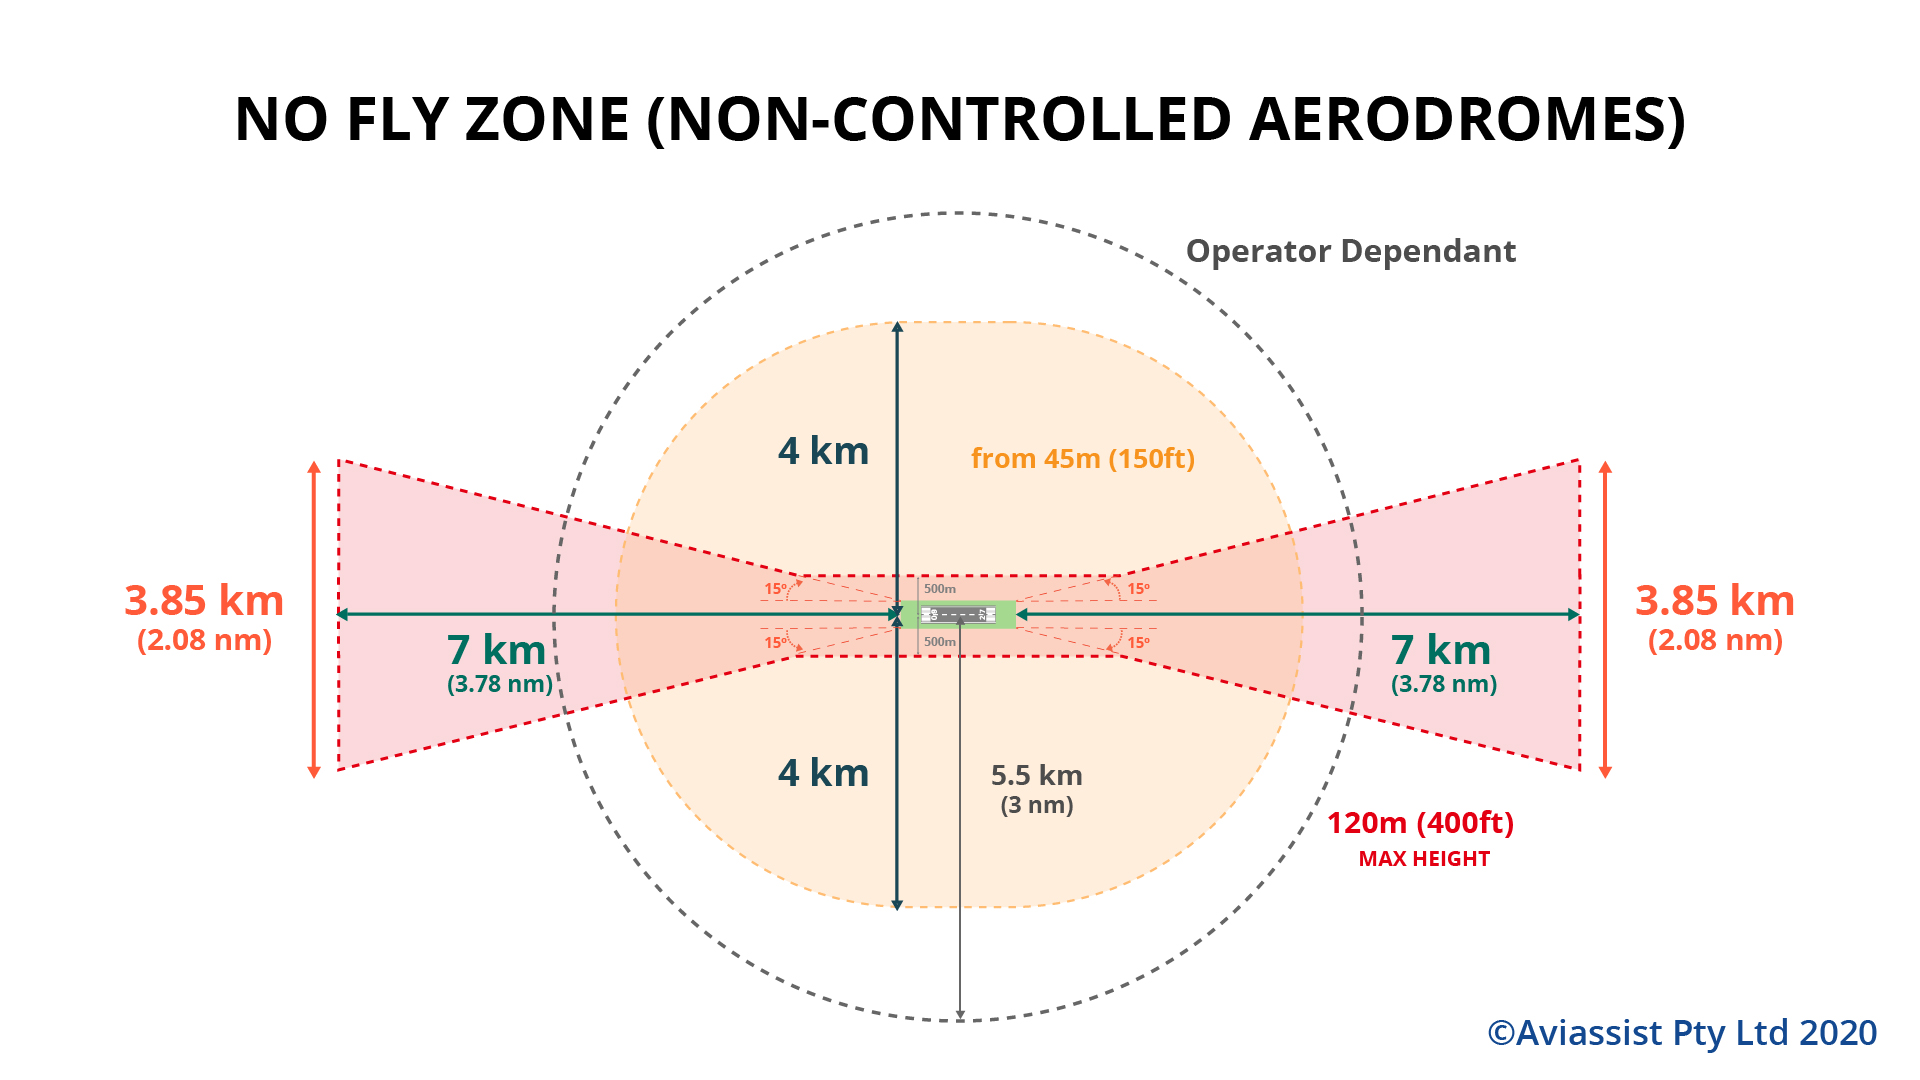 drone no fly zone non controlled aerodrome